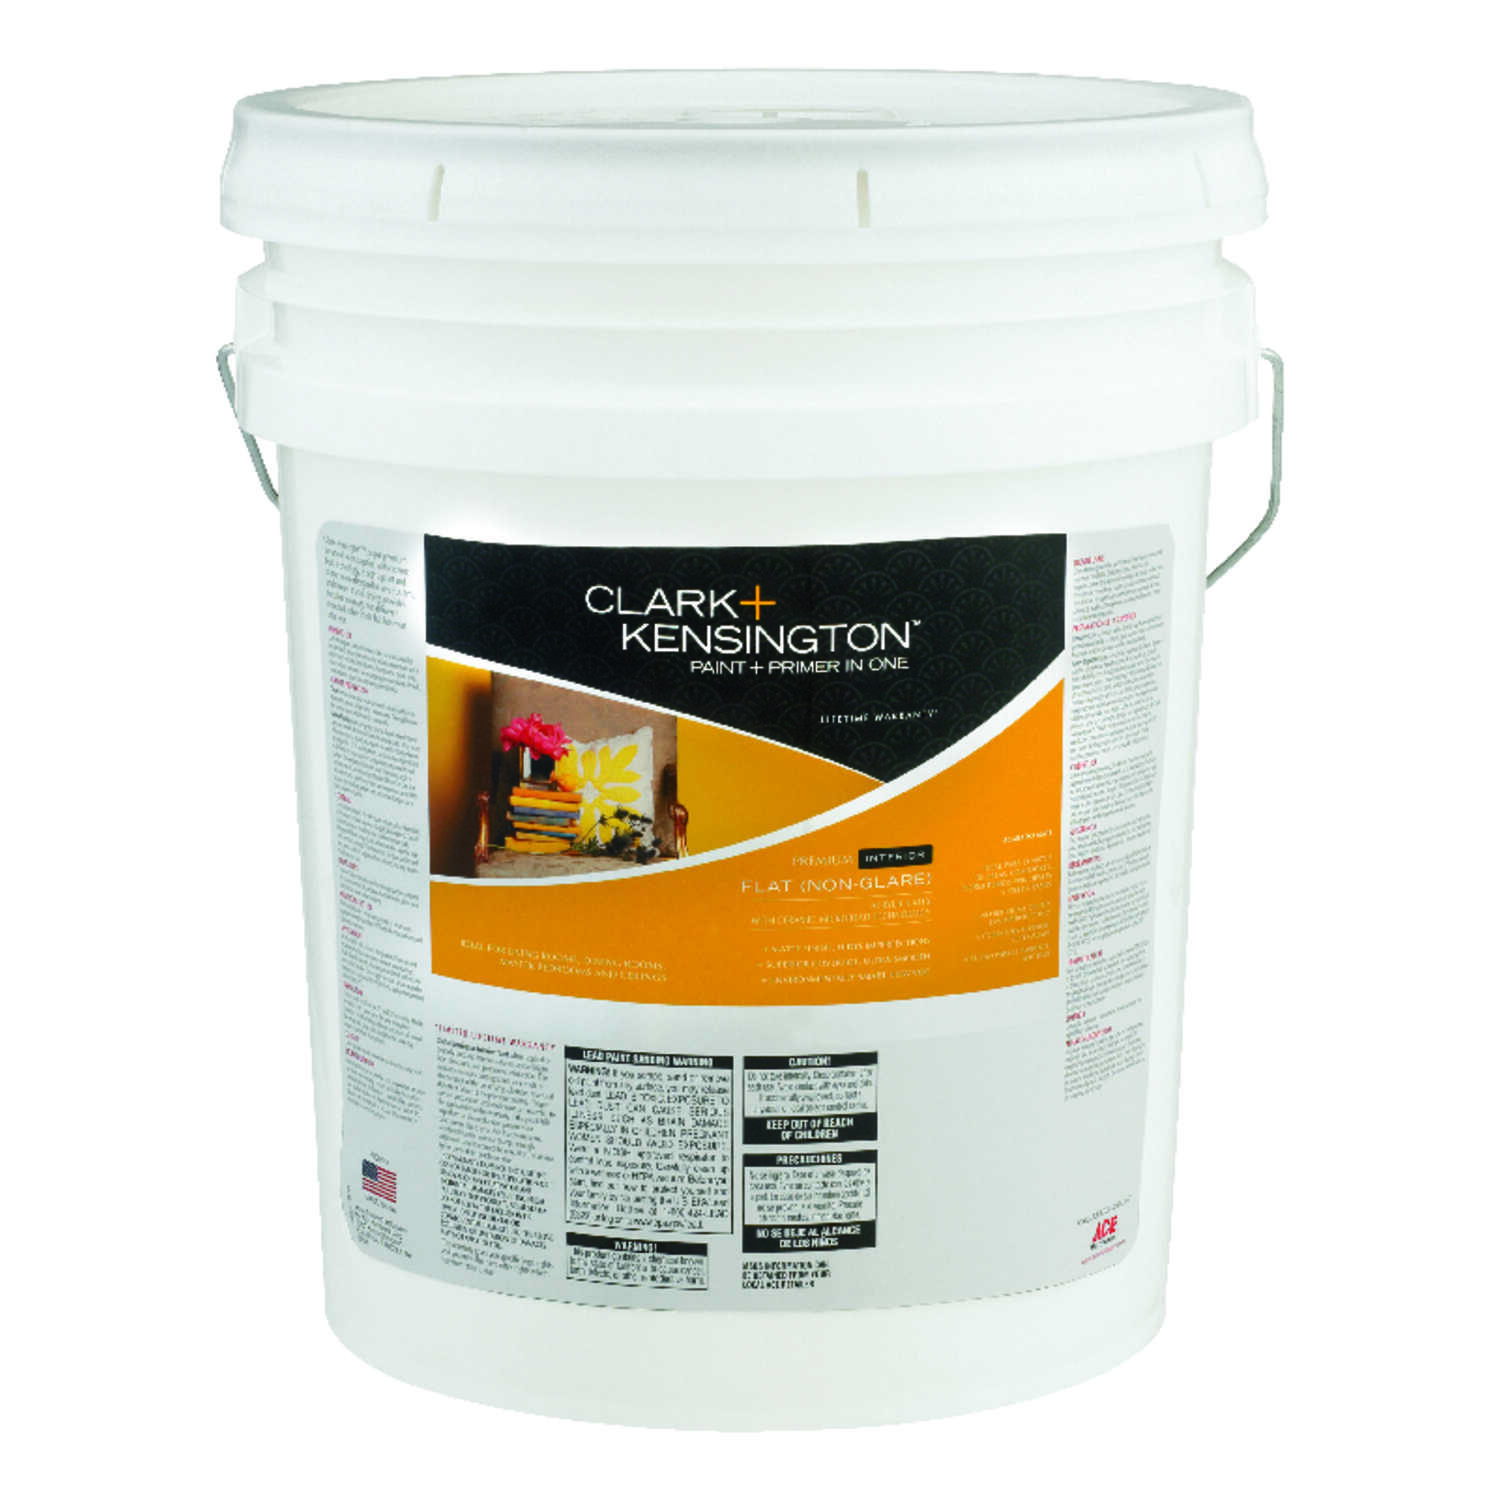 Clark+Kensington Paint and Primer In One Acrylic Latex Interior Flat  Midtone Tint Base  5 gal.